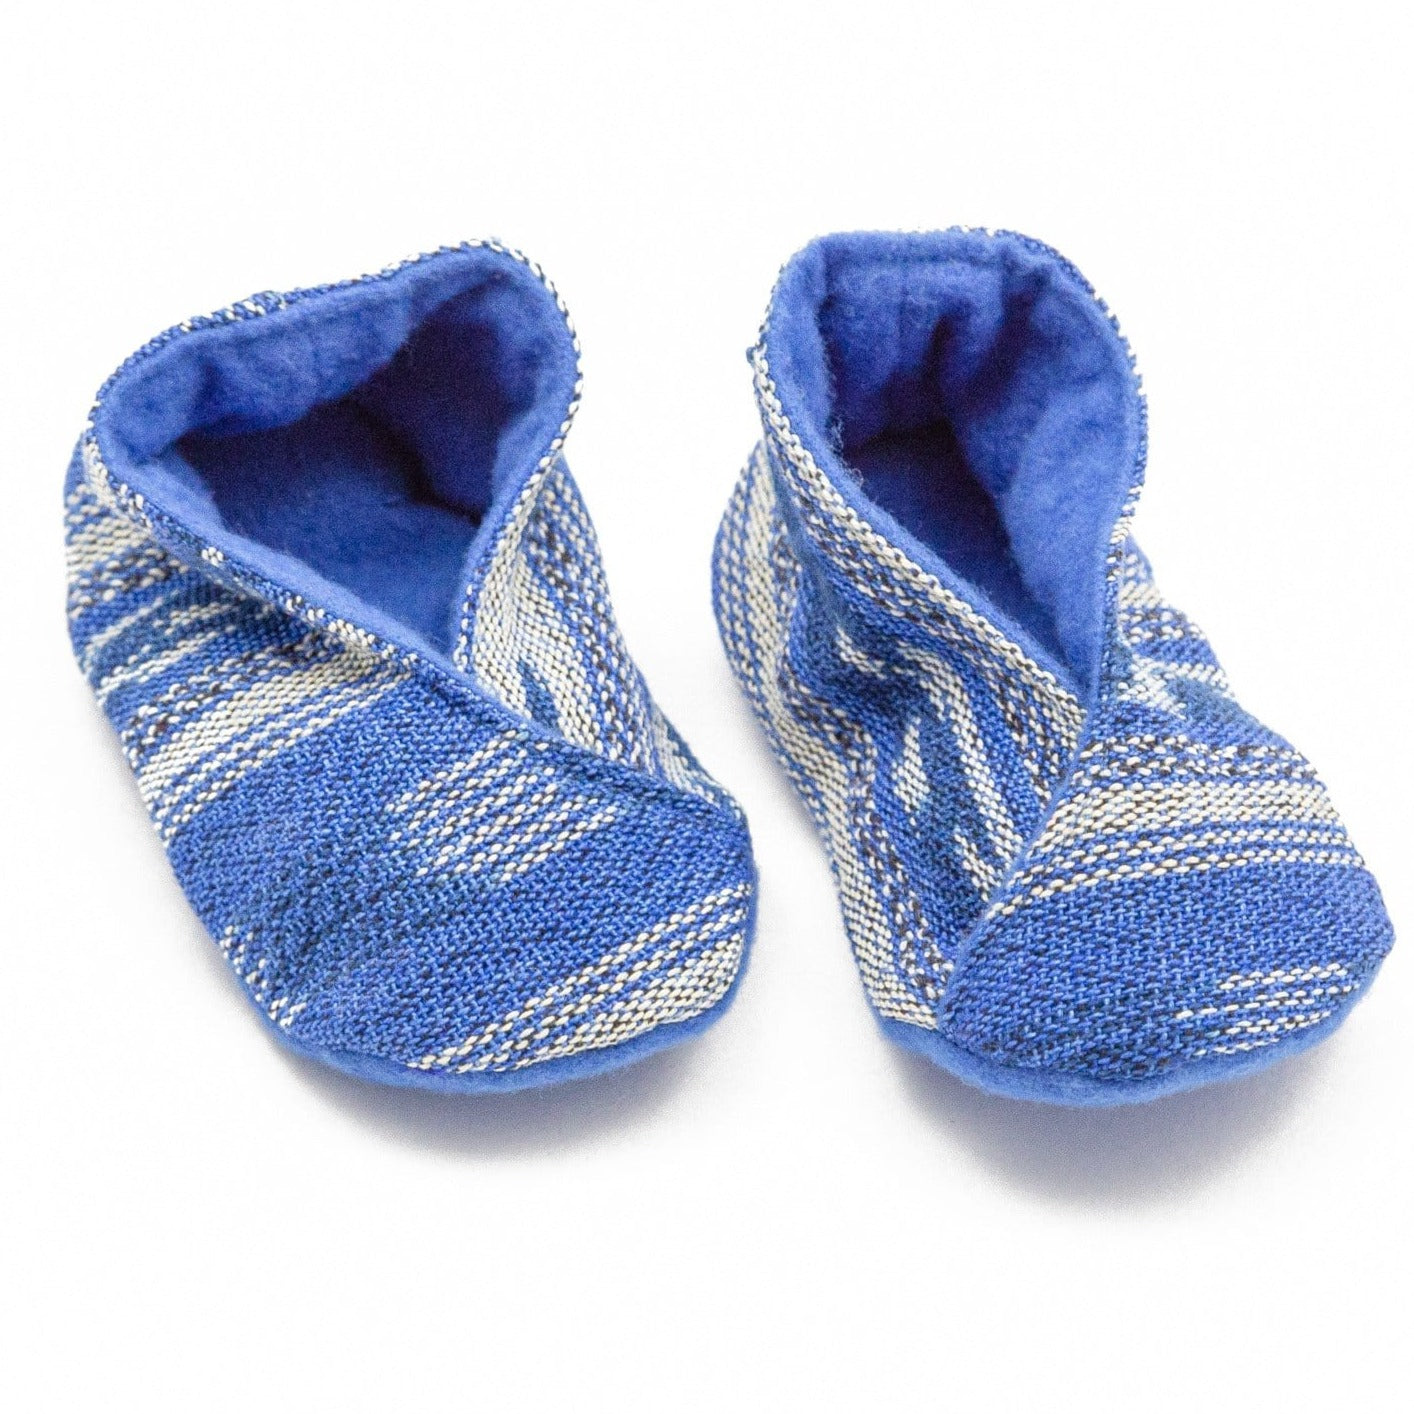 Fair Trade Handwoven Baby Booties Blue Jaspe